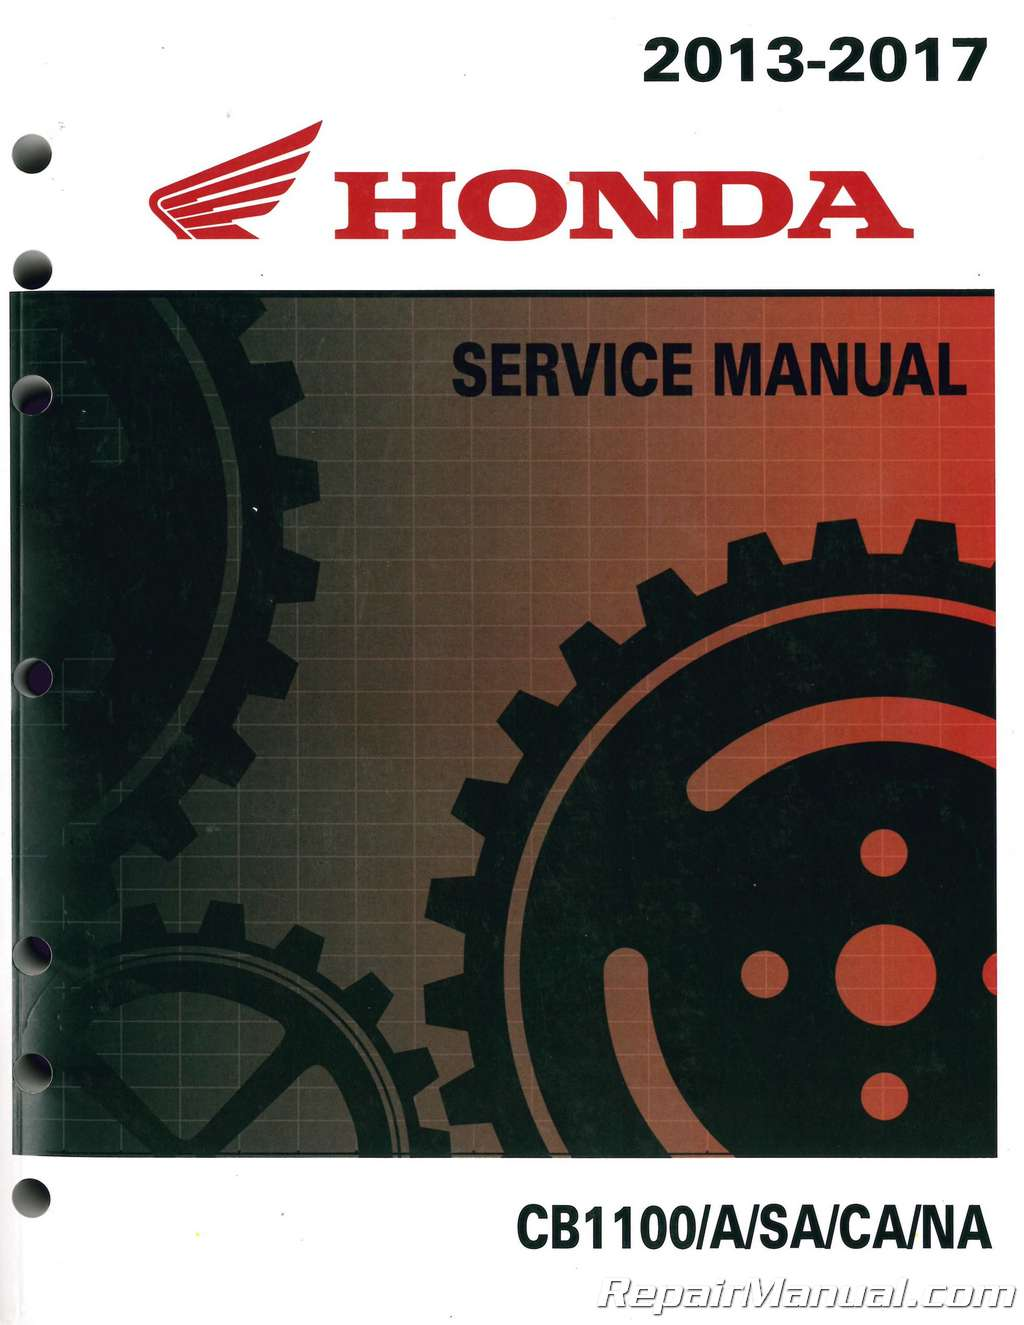 hight resolution of 2013 2017 honda cb1100 a motorcycle service manual